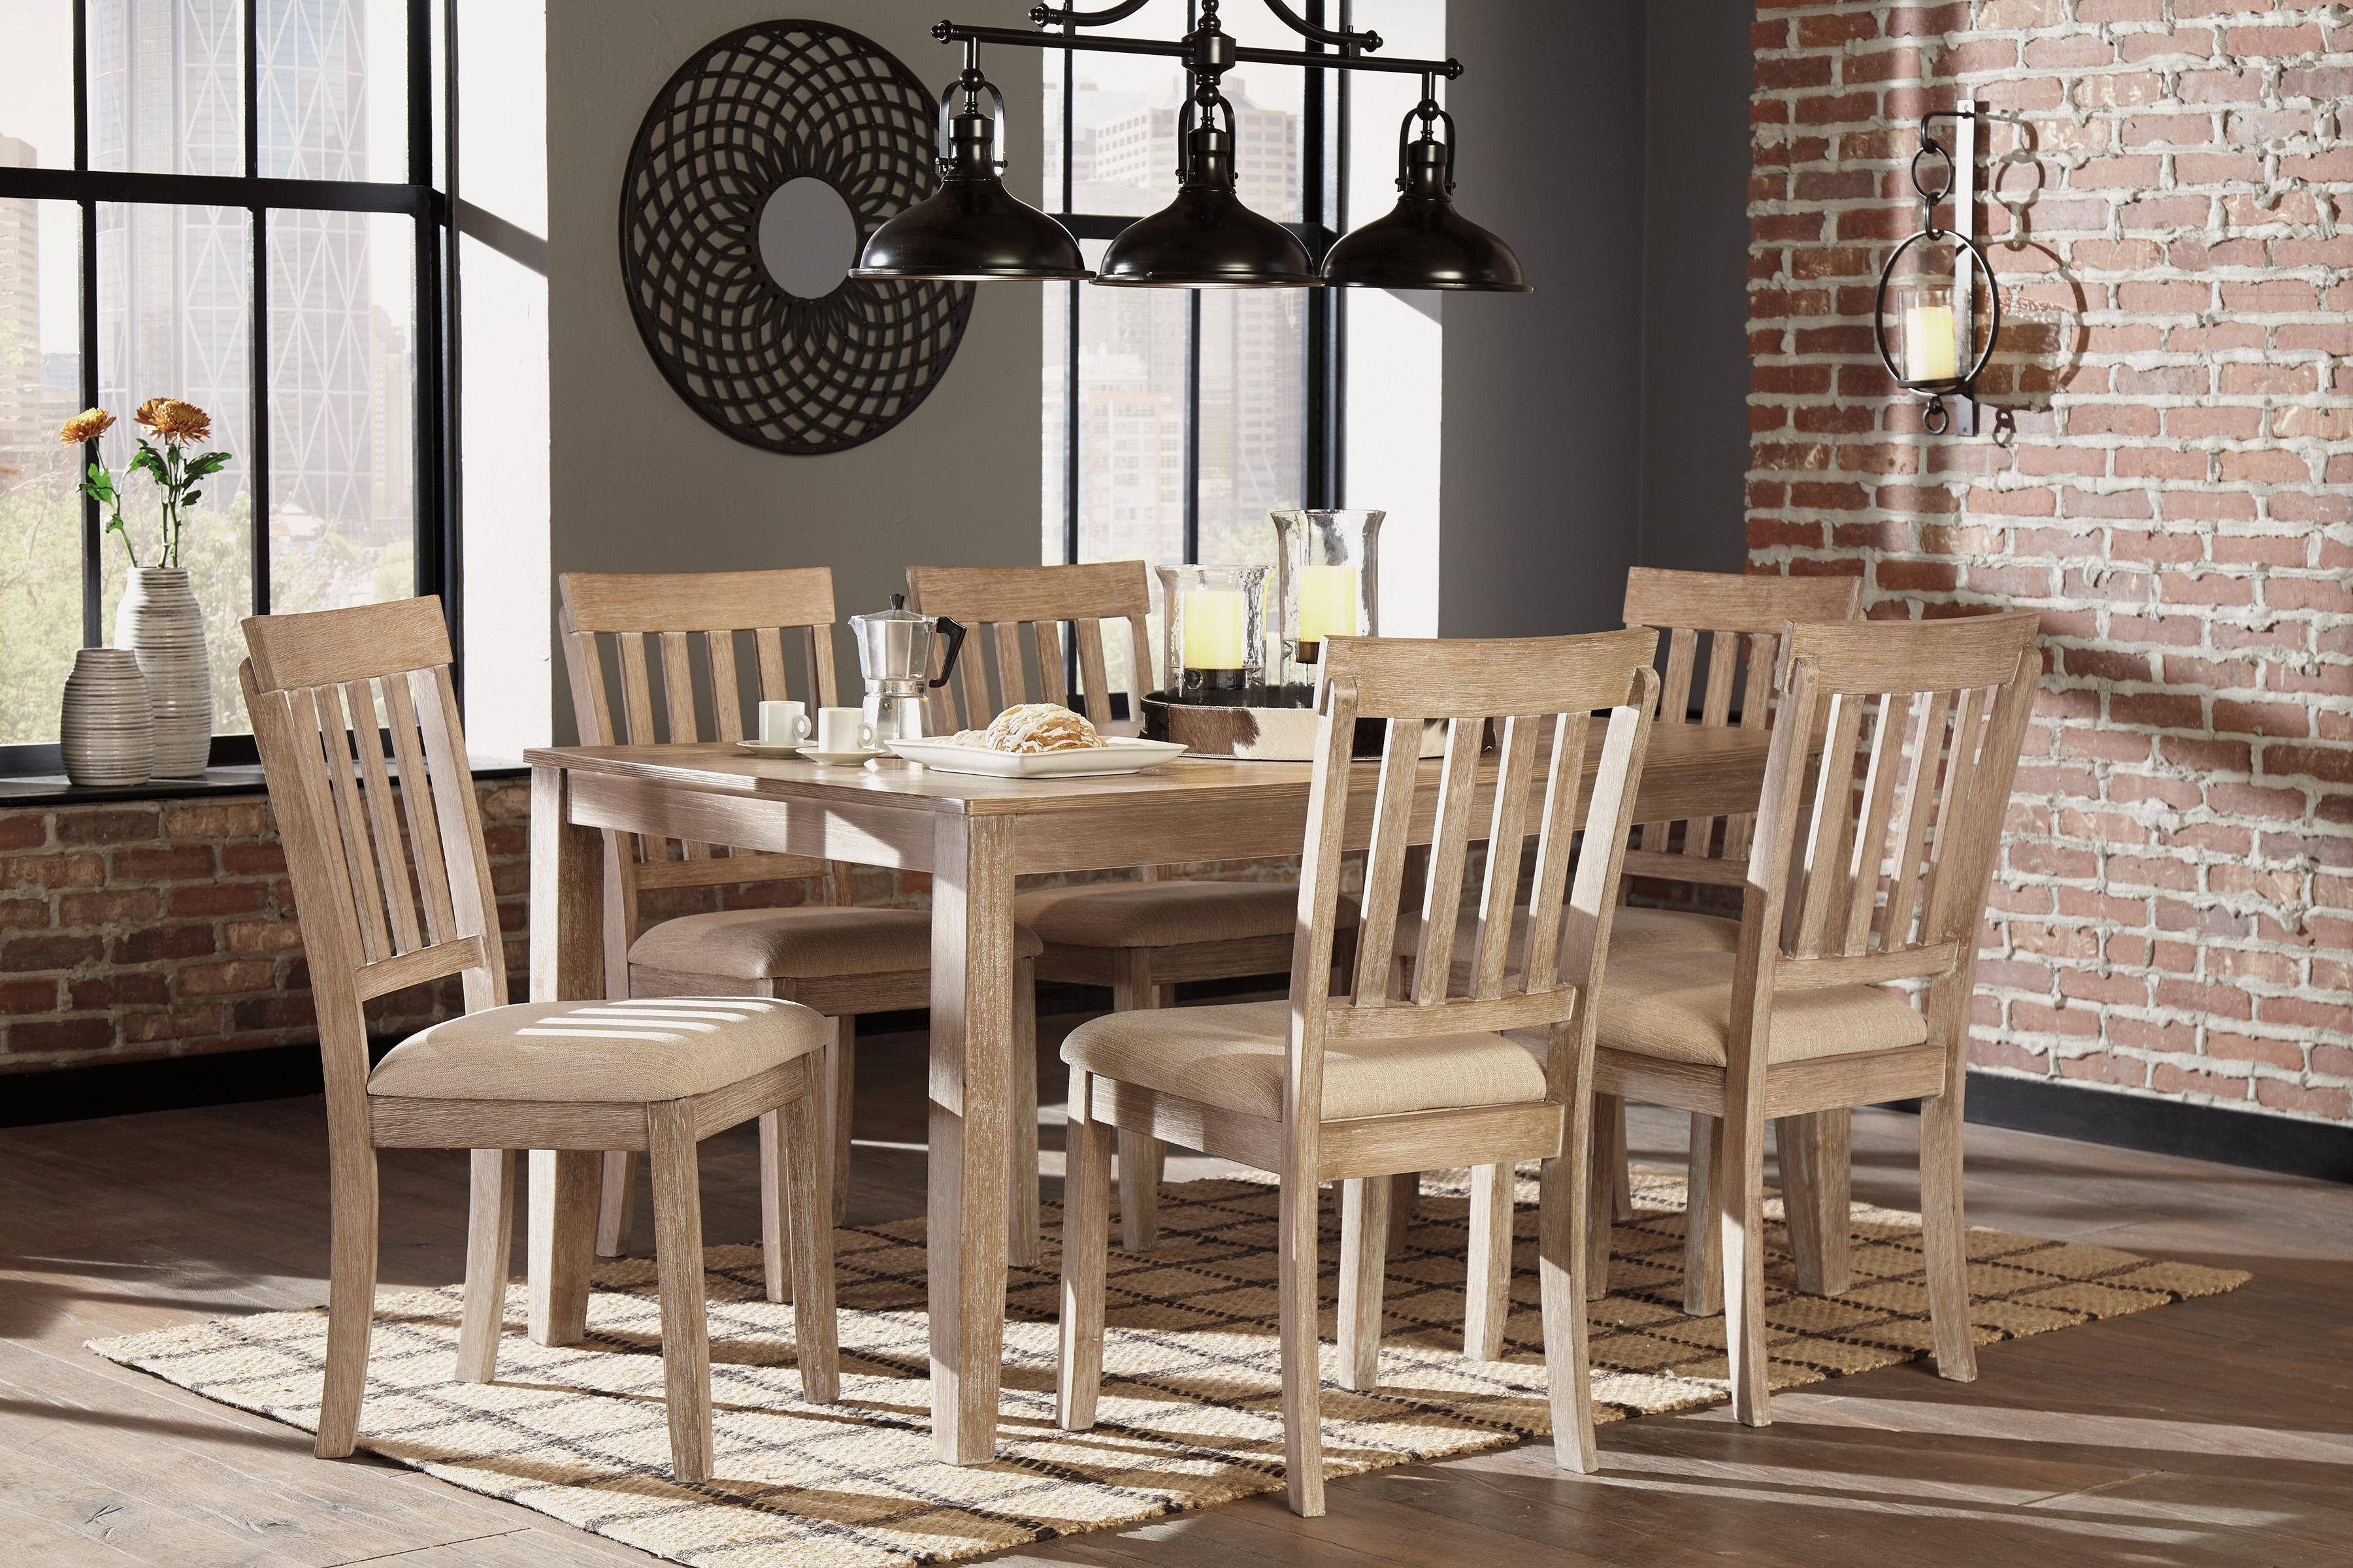 Ashley Mattilone D484 Dining Room Set 7pcs In White Wash